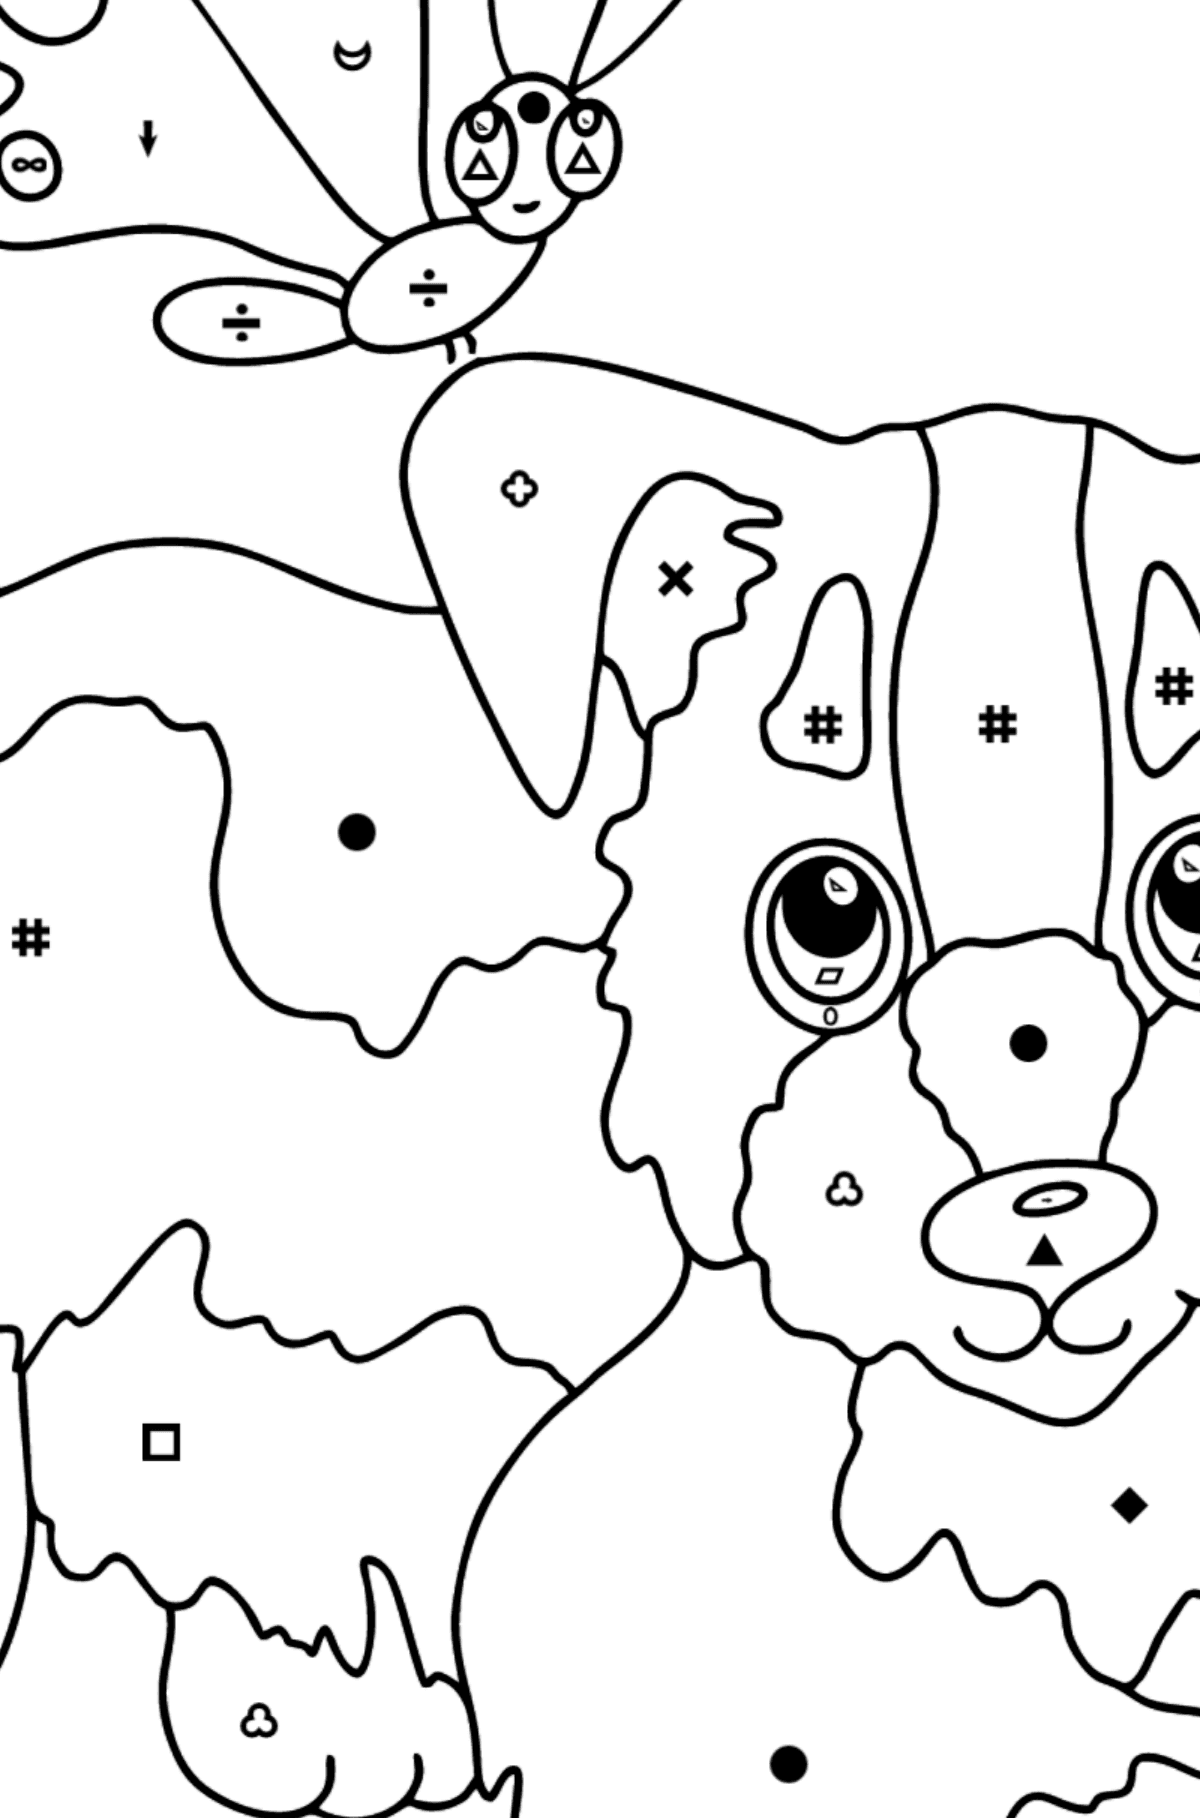 Coloring Page - A Dog is Playing with a Butterfly - Coloring by Symbols and Geometric Shapes for Kids